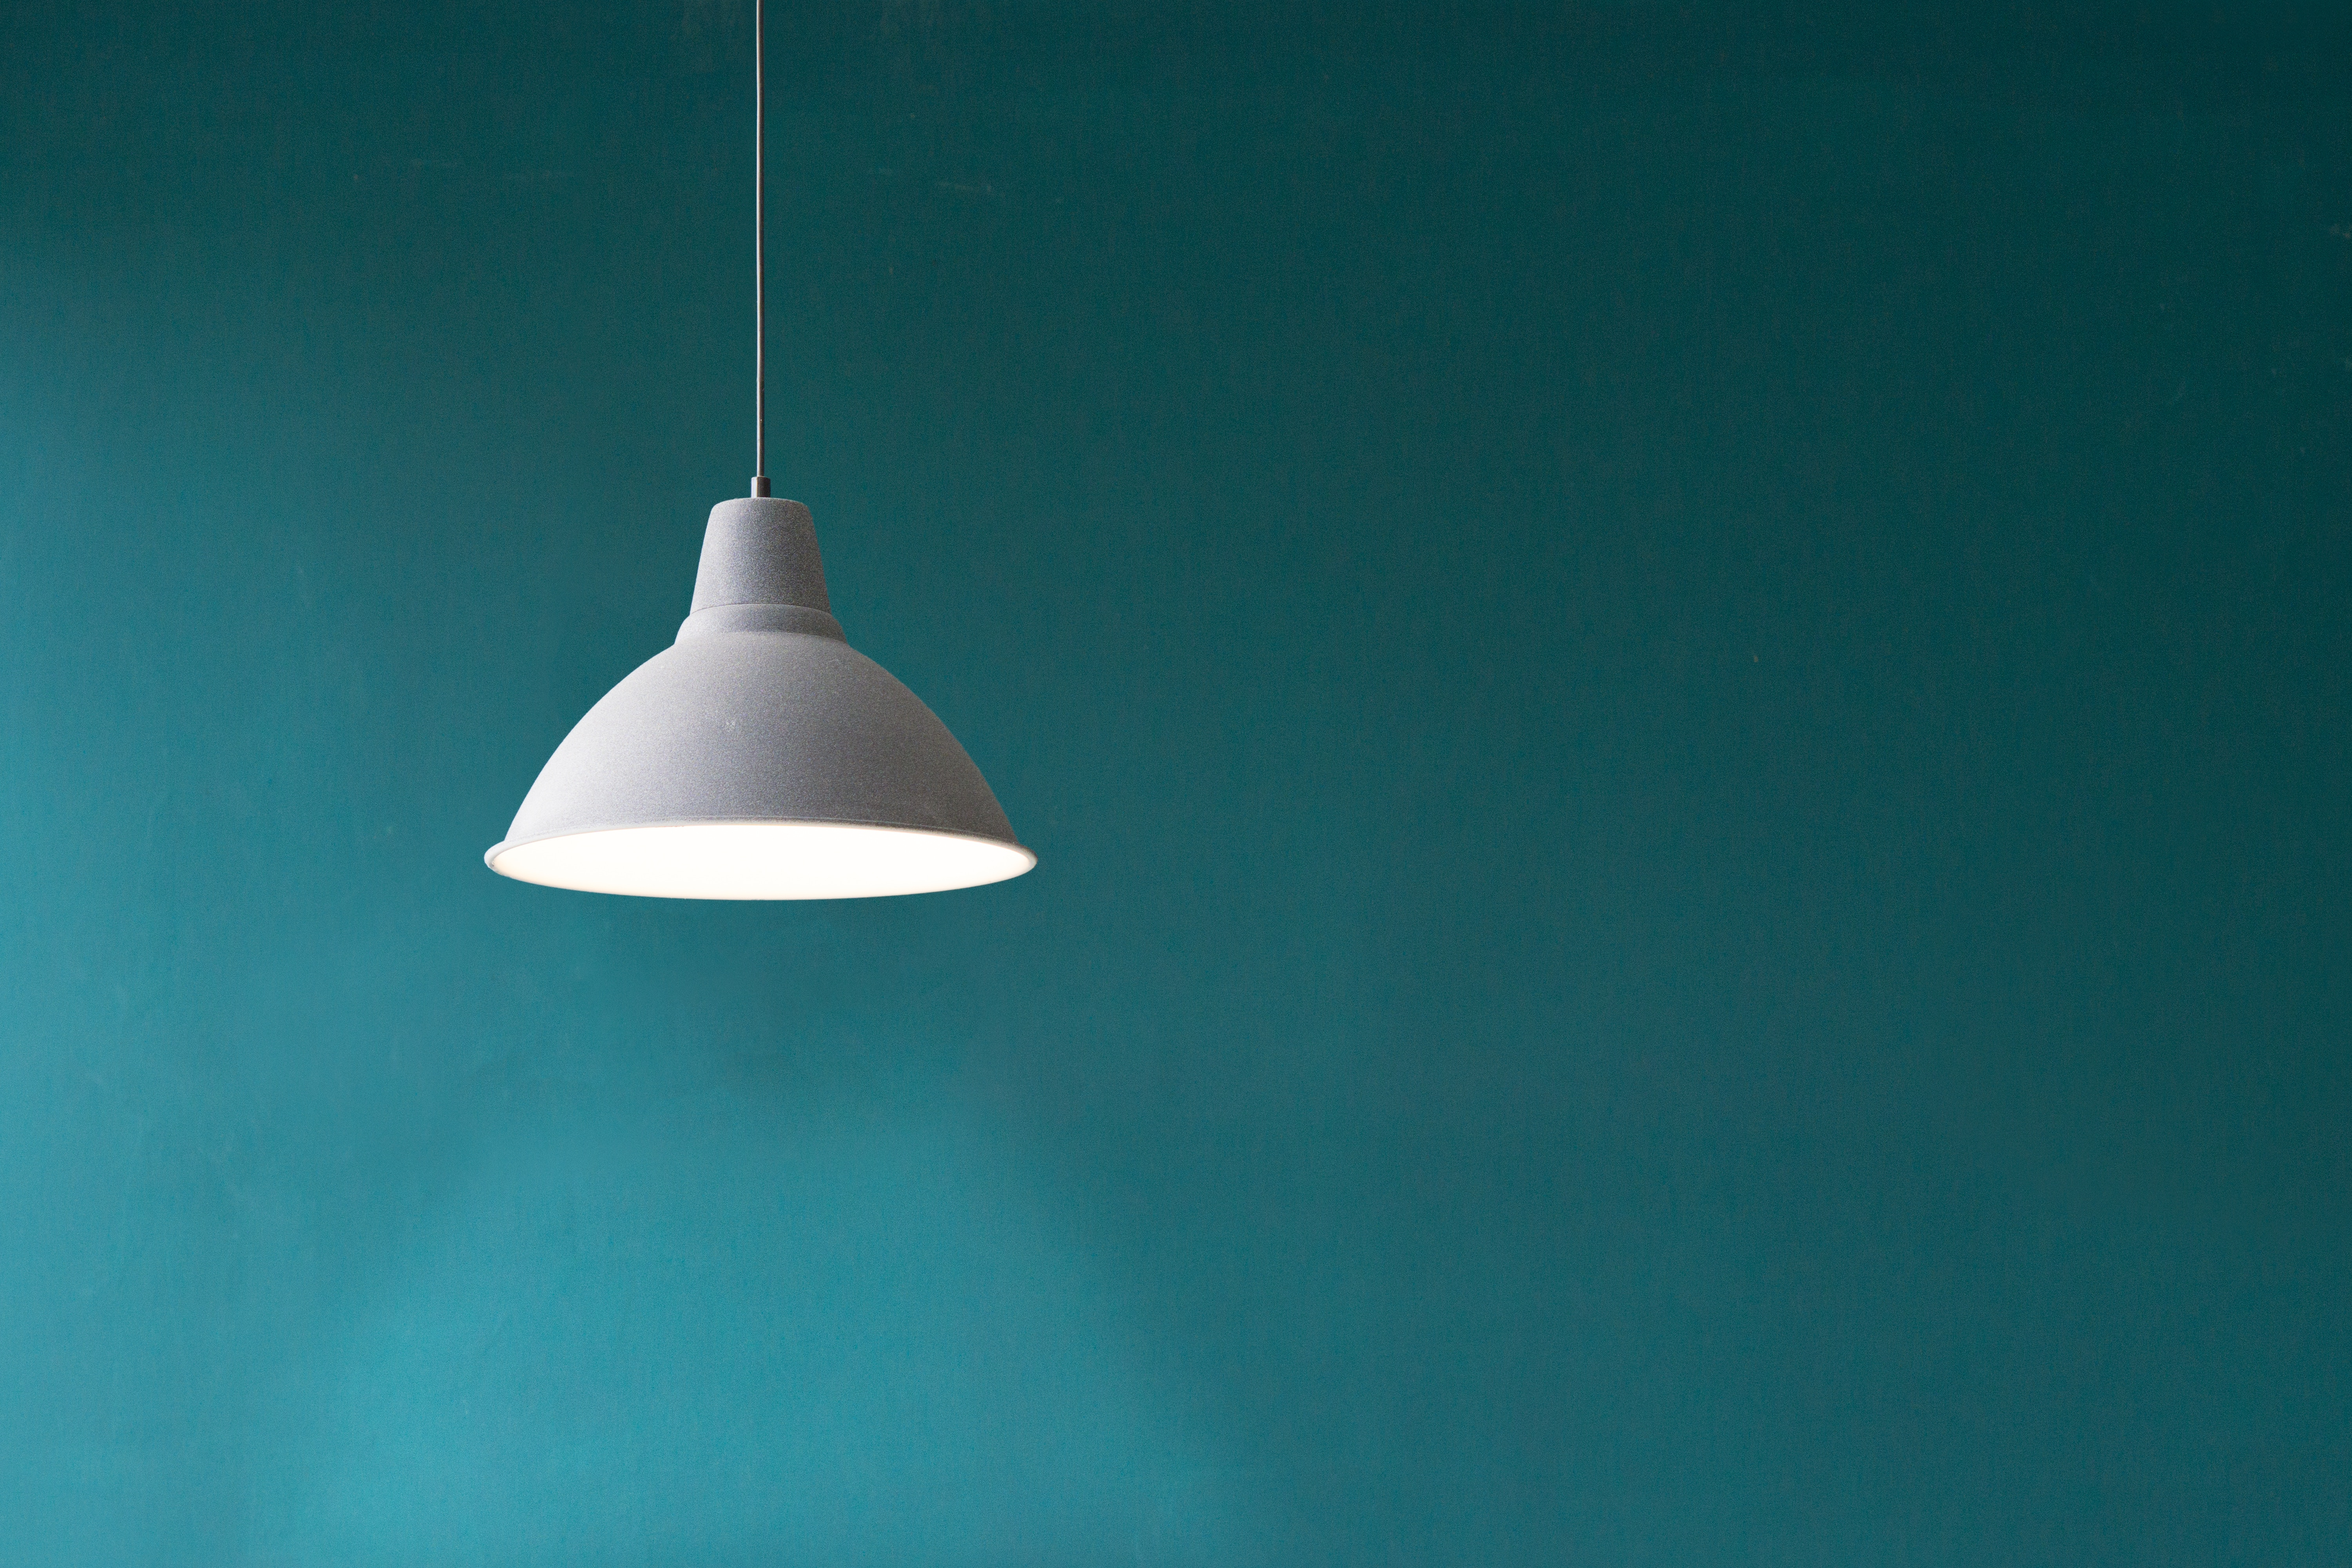 93996 download wallpaper Minimalism, Wall, Lamp, Electricity screensavers and pictures for free